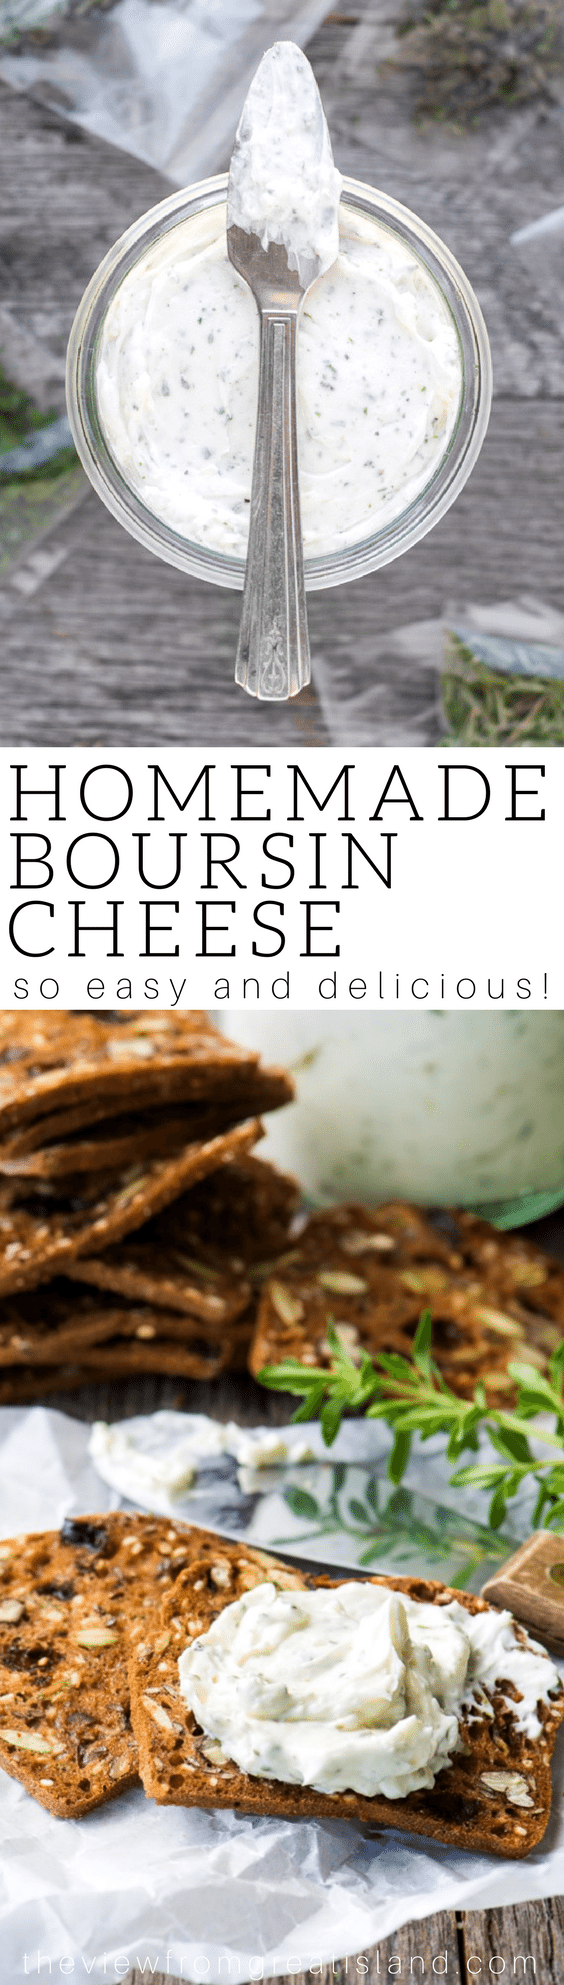 My Homemade Boursin Cheese recipe will blow you away, it's perfect for the holidays! #diy #cheese #herbs #cheeseandcrackers #appetizer # driedherbs #herbedcheese #homemadecheese #spread #recipe #easy #creamcheese